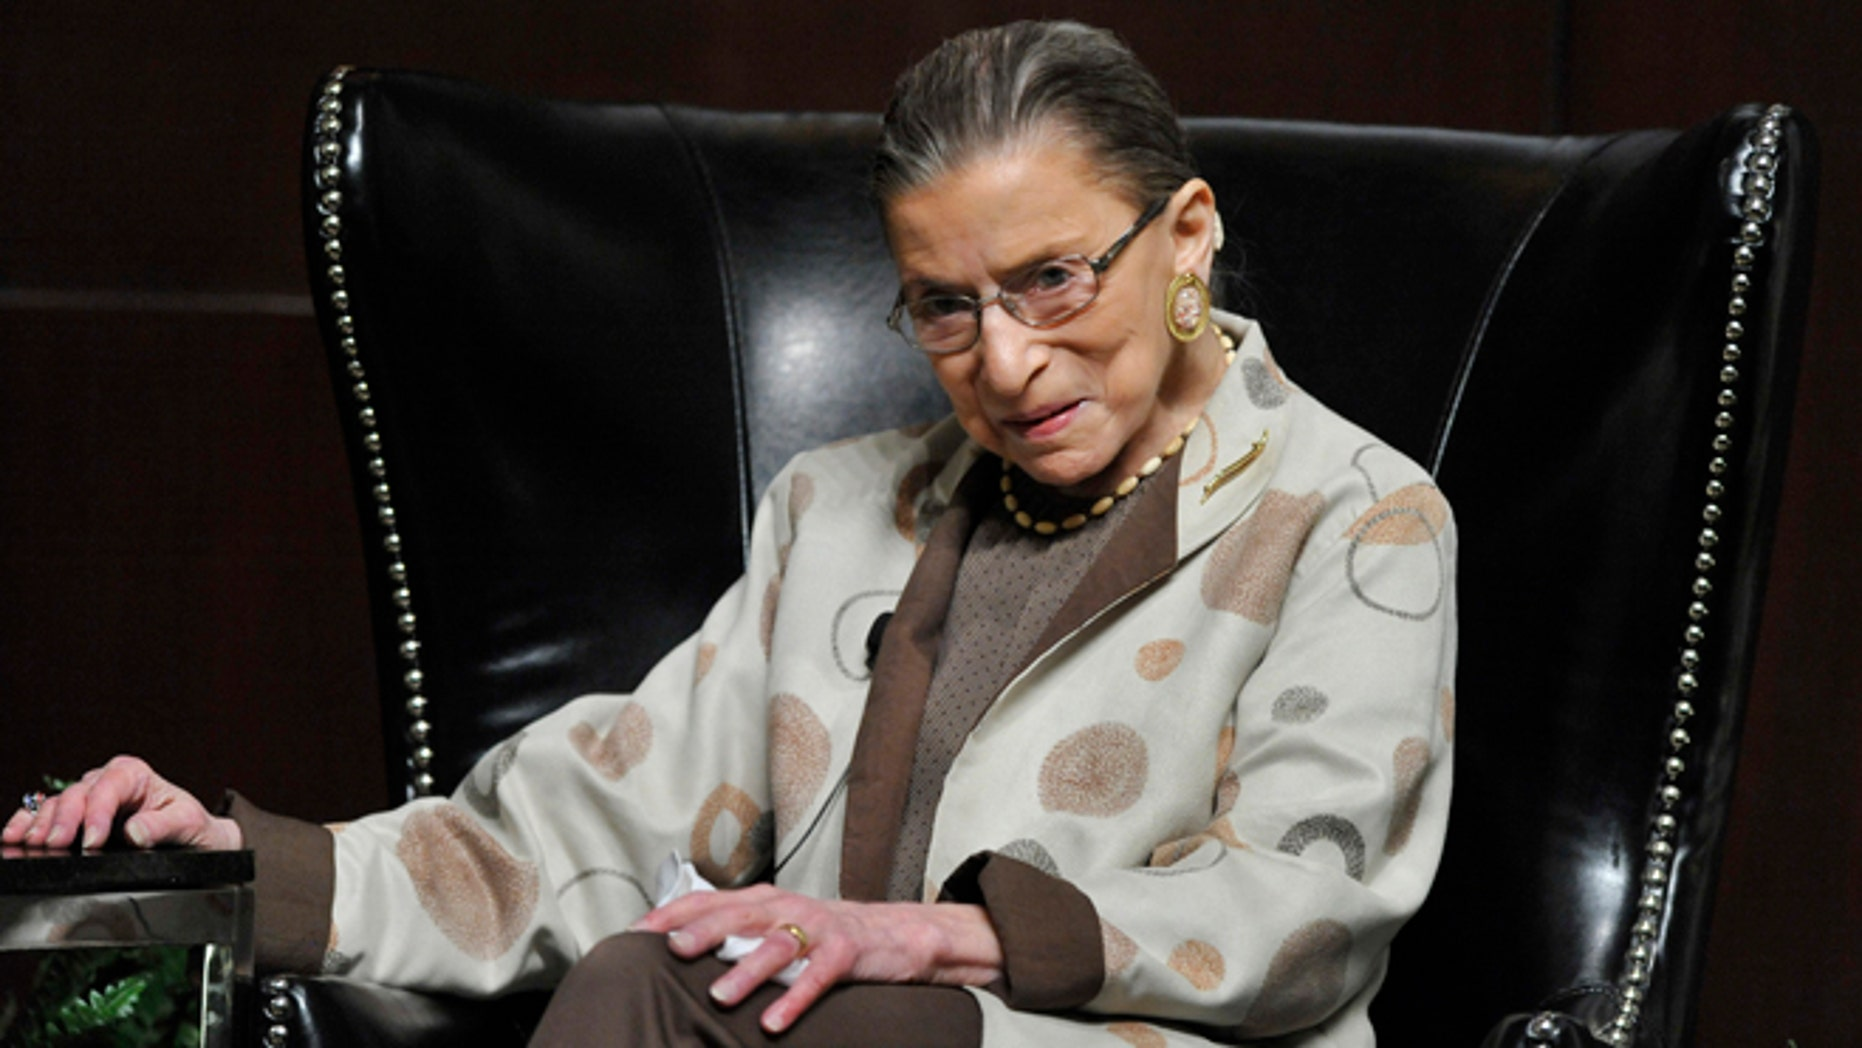 May 11, 2013: U.S. Supreme Court Justice Ruth Bader Ginsburg discusses the Roe vs. Wade case on it's 40th anniversary at The University of Chicago Law School in Chicago.